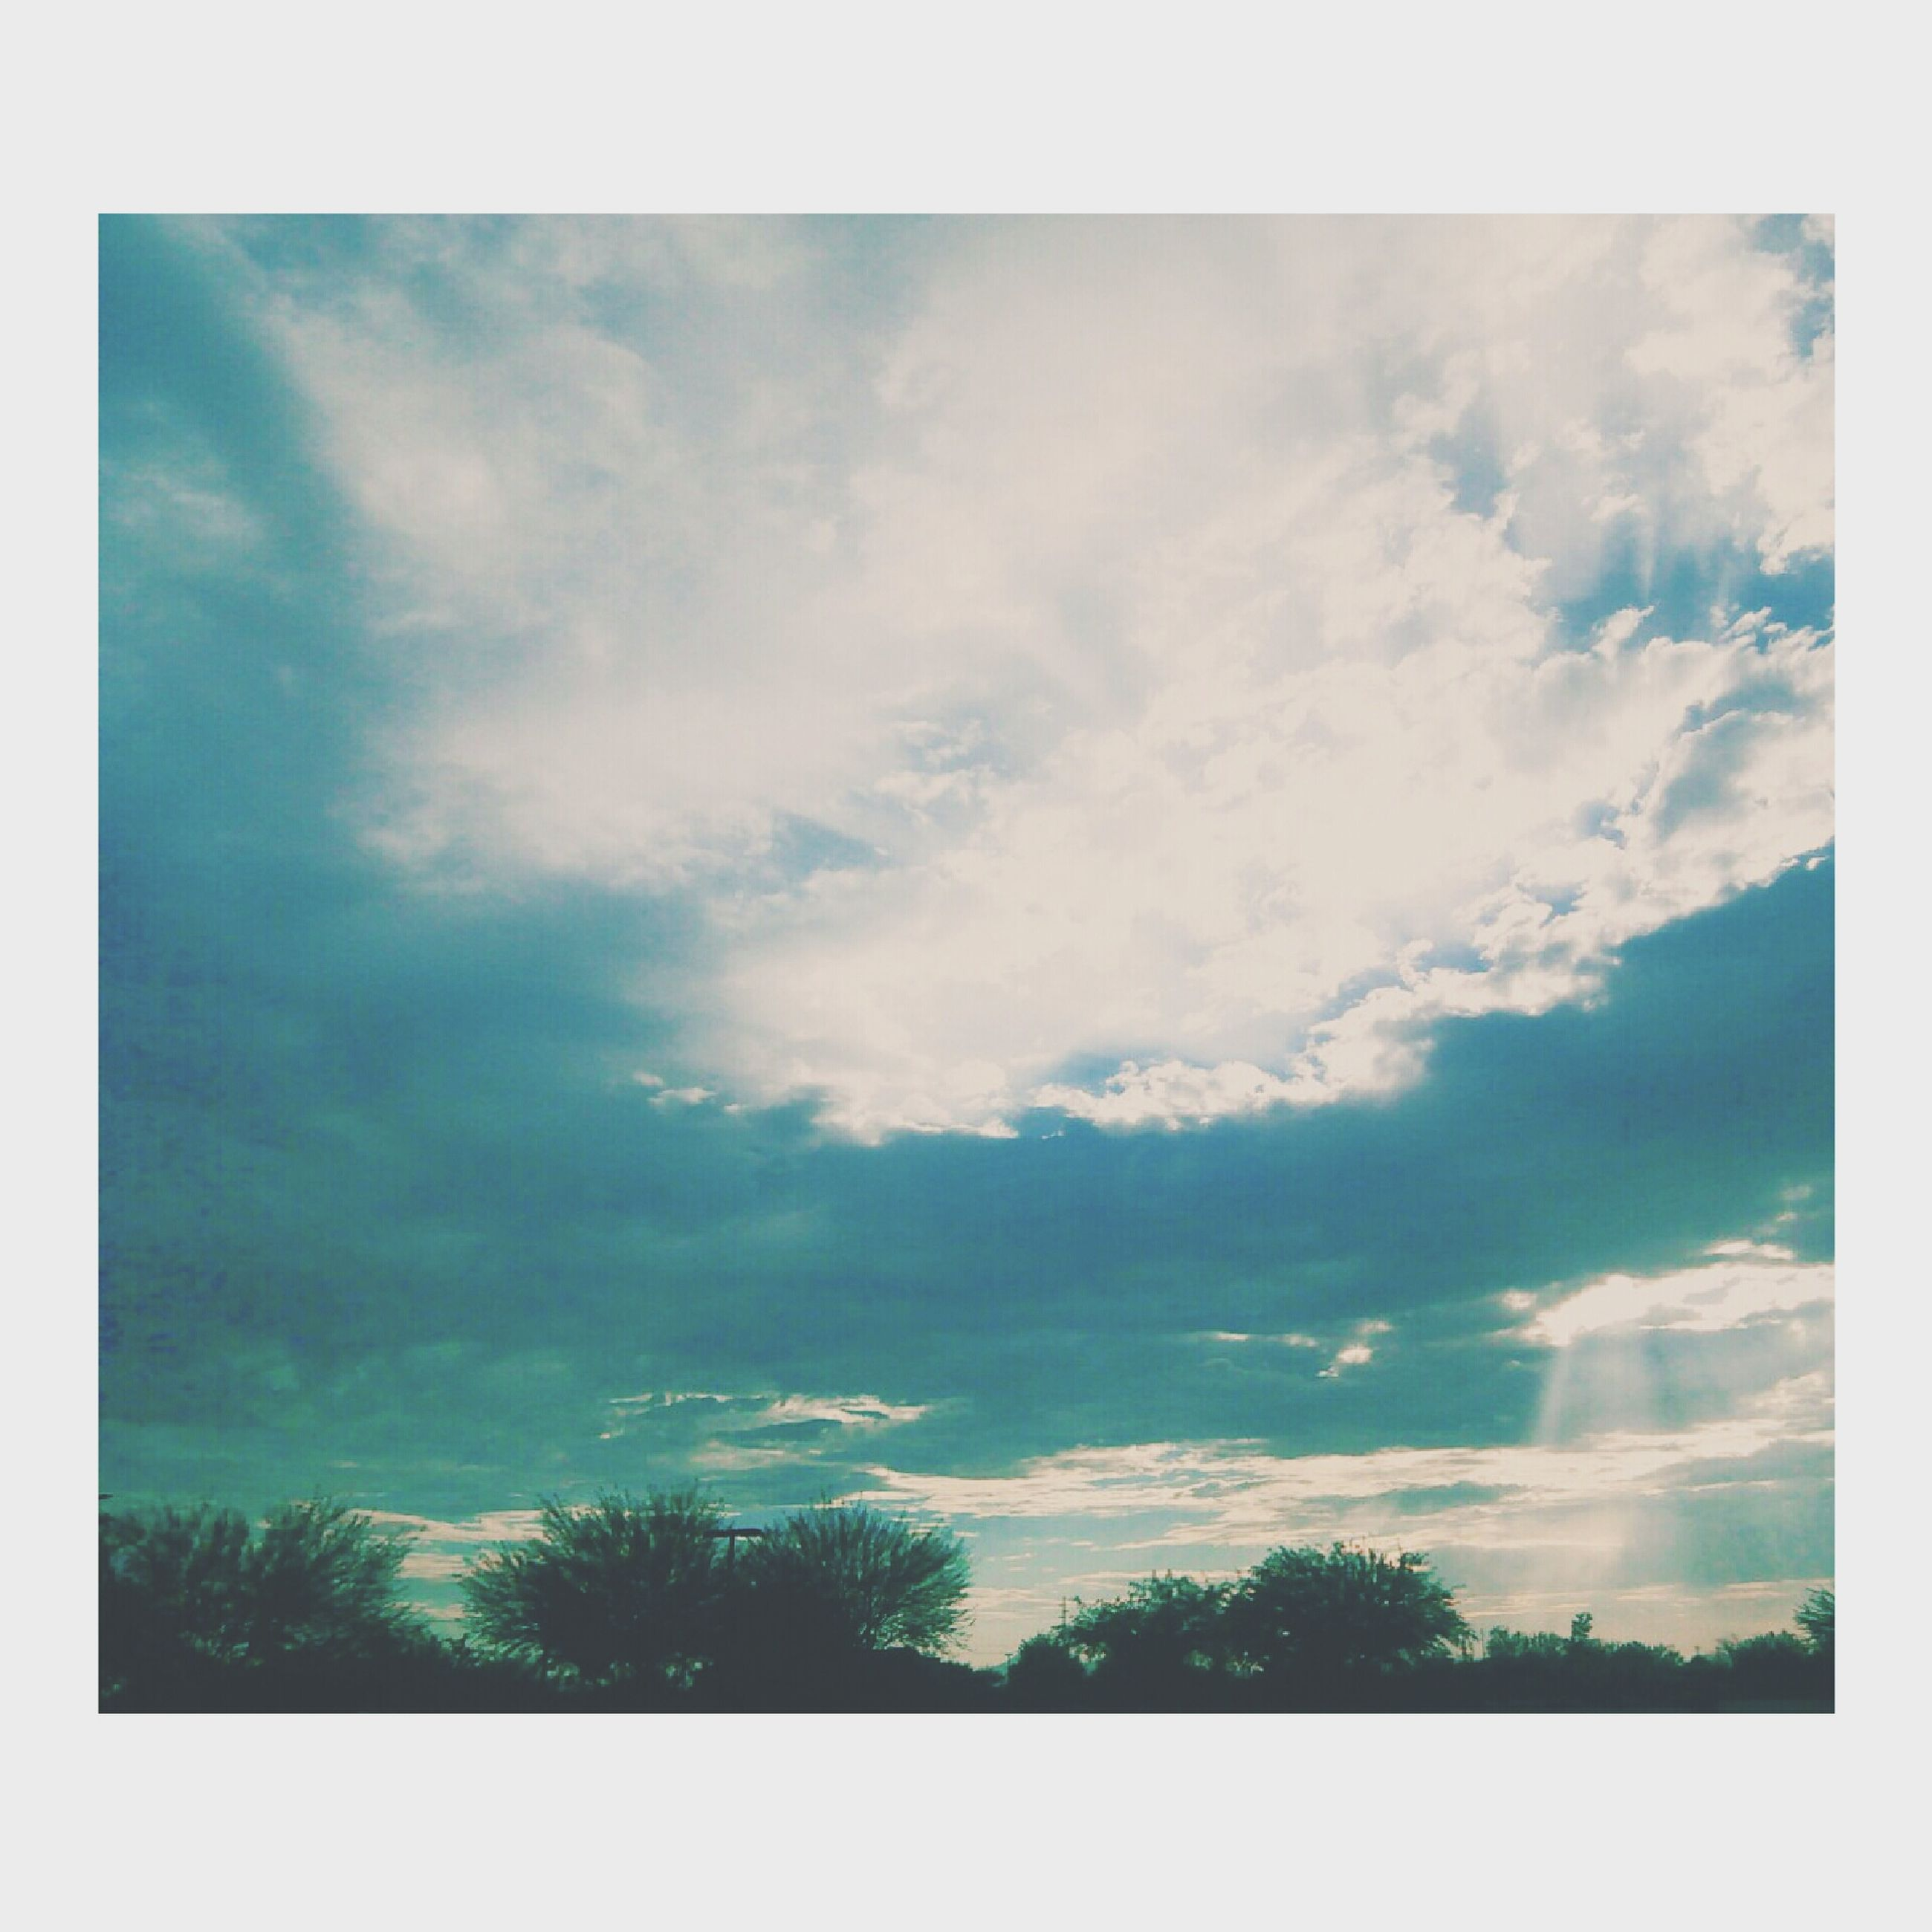 sky, transfer print, cloud - sky, tranquility, tranquil scene, beauty in nature, scenics, auto post production filter, cloudy, nature, tree, cloud, low angle view, idyllic, weather, outdoors, day, blue, no people, overcast